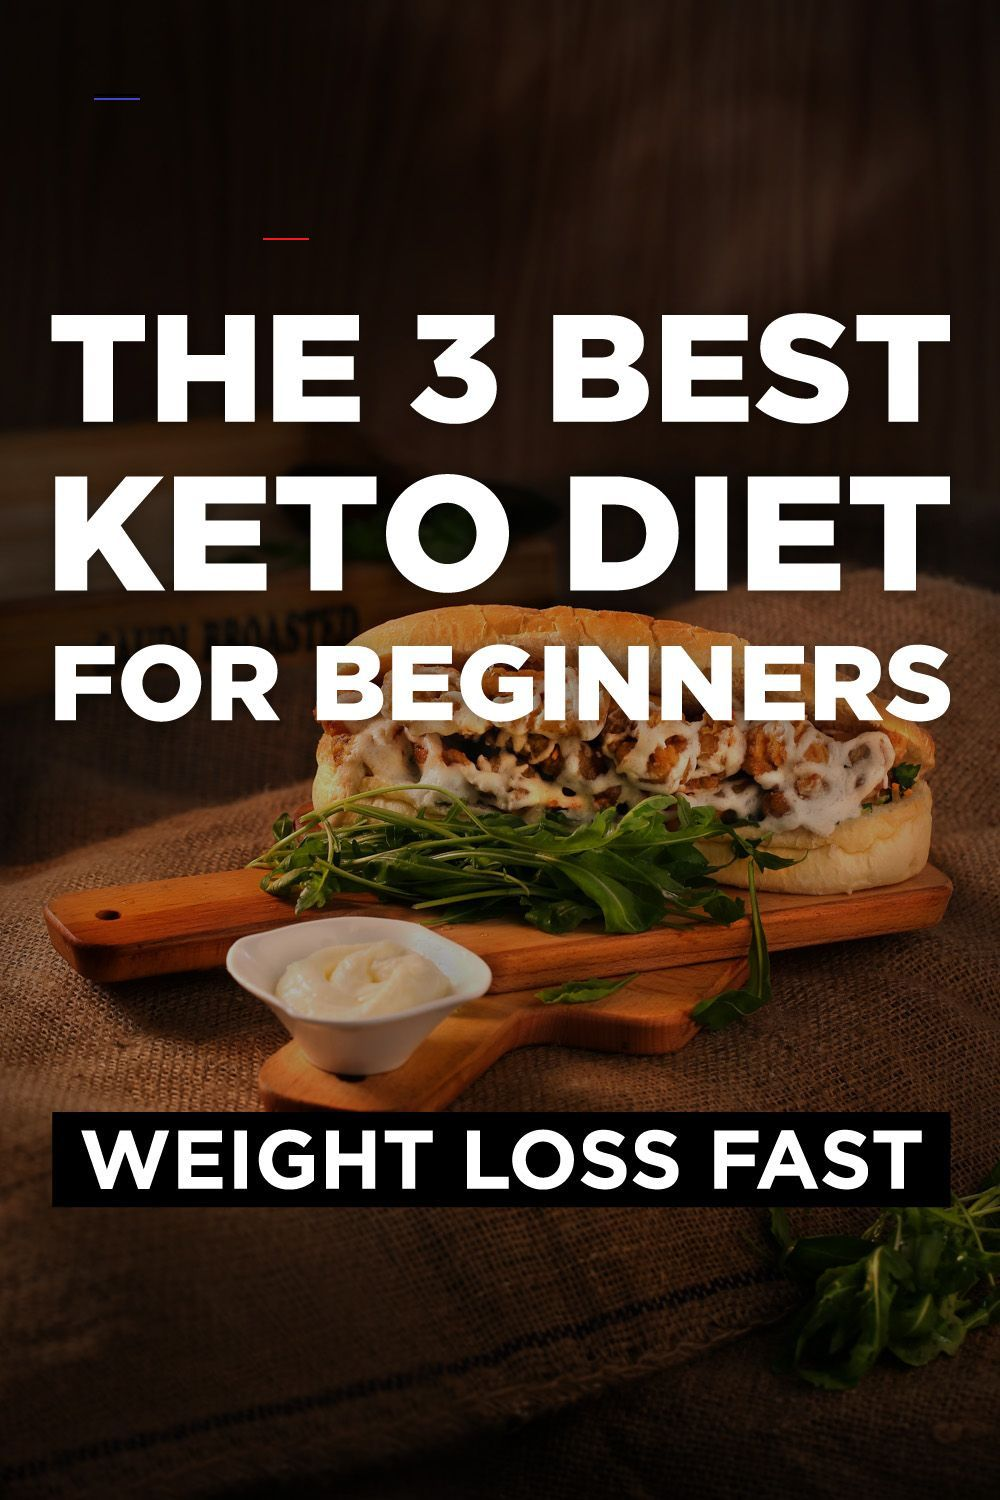 Get Fit Now Lose 10 Lbs Fitness Diet Get Healthy